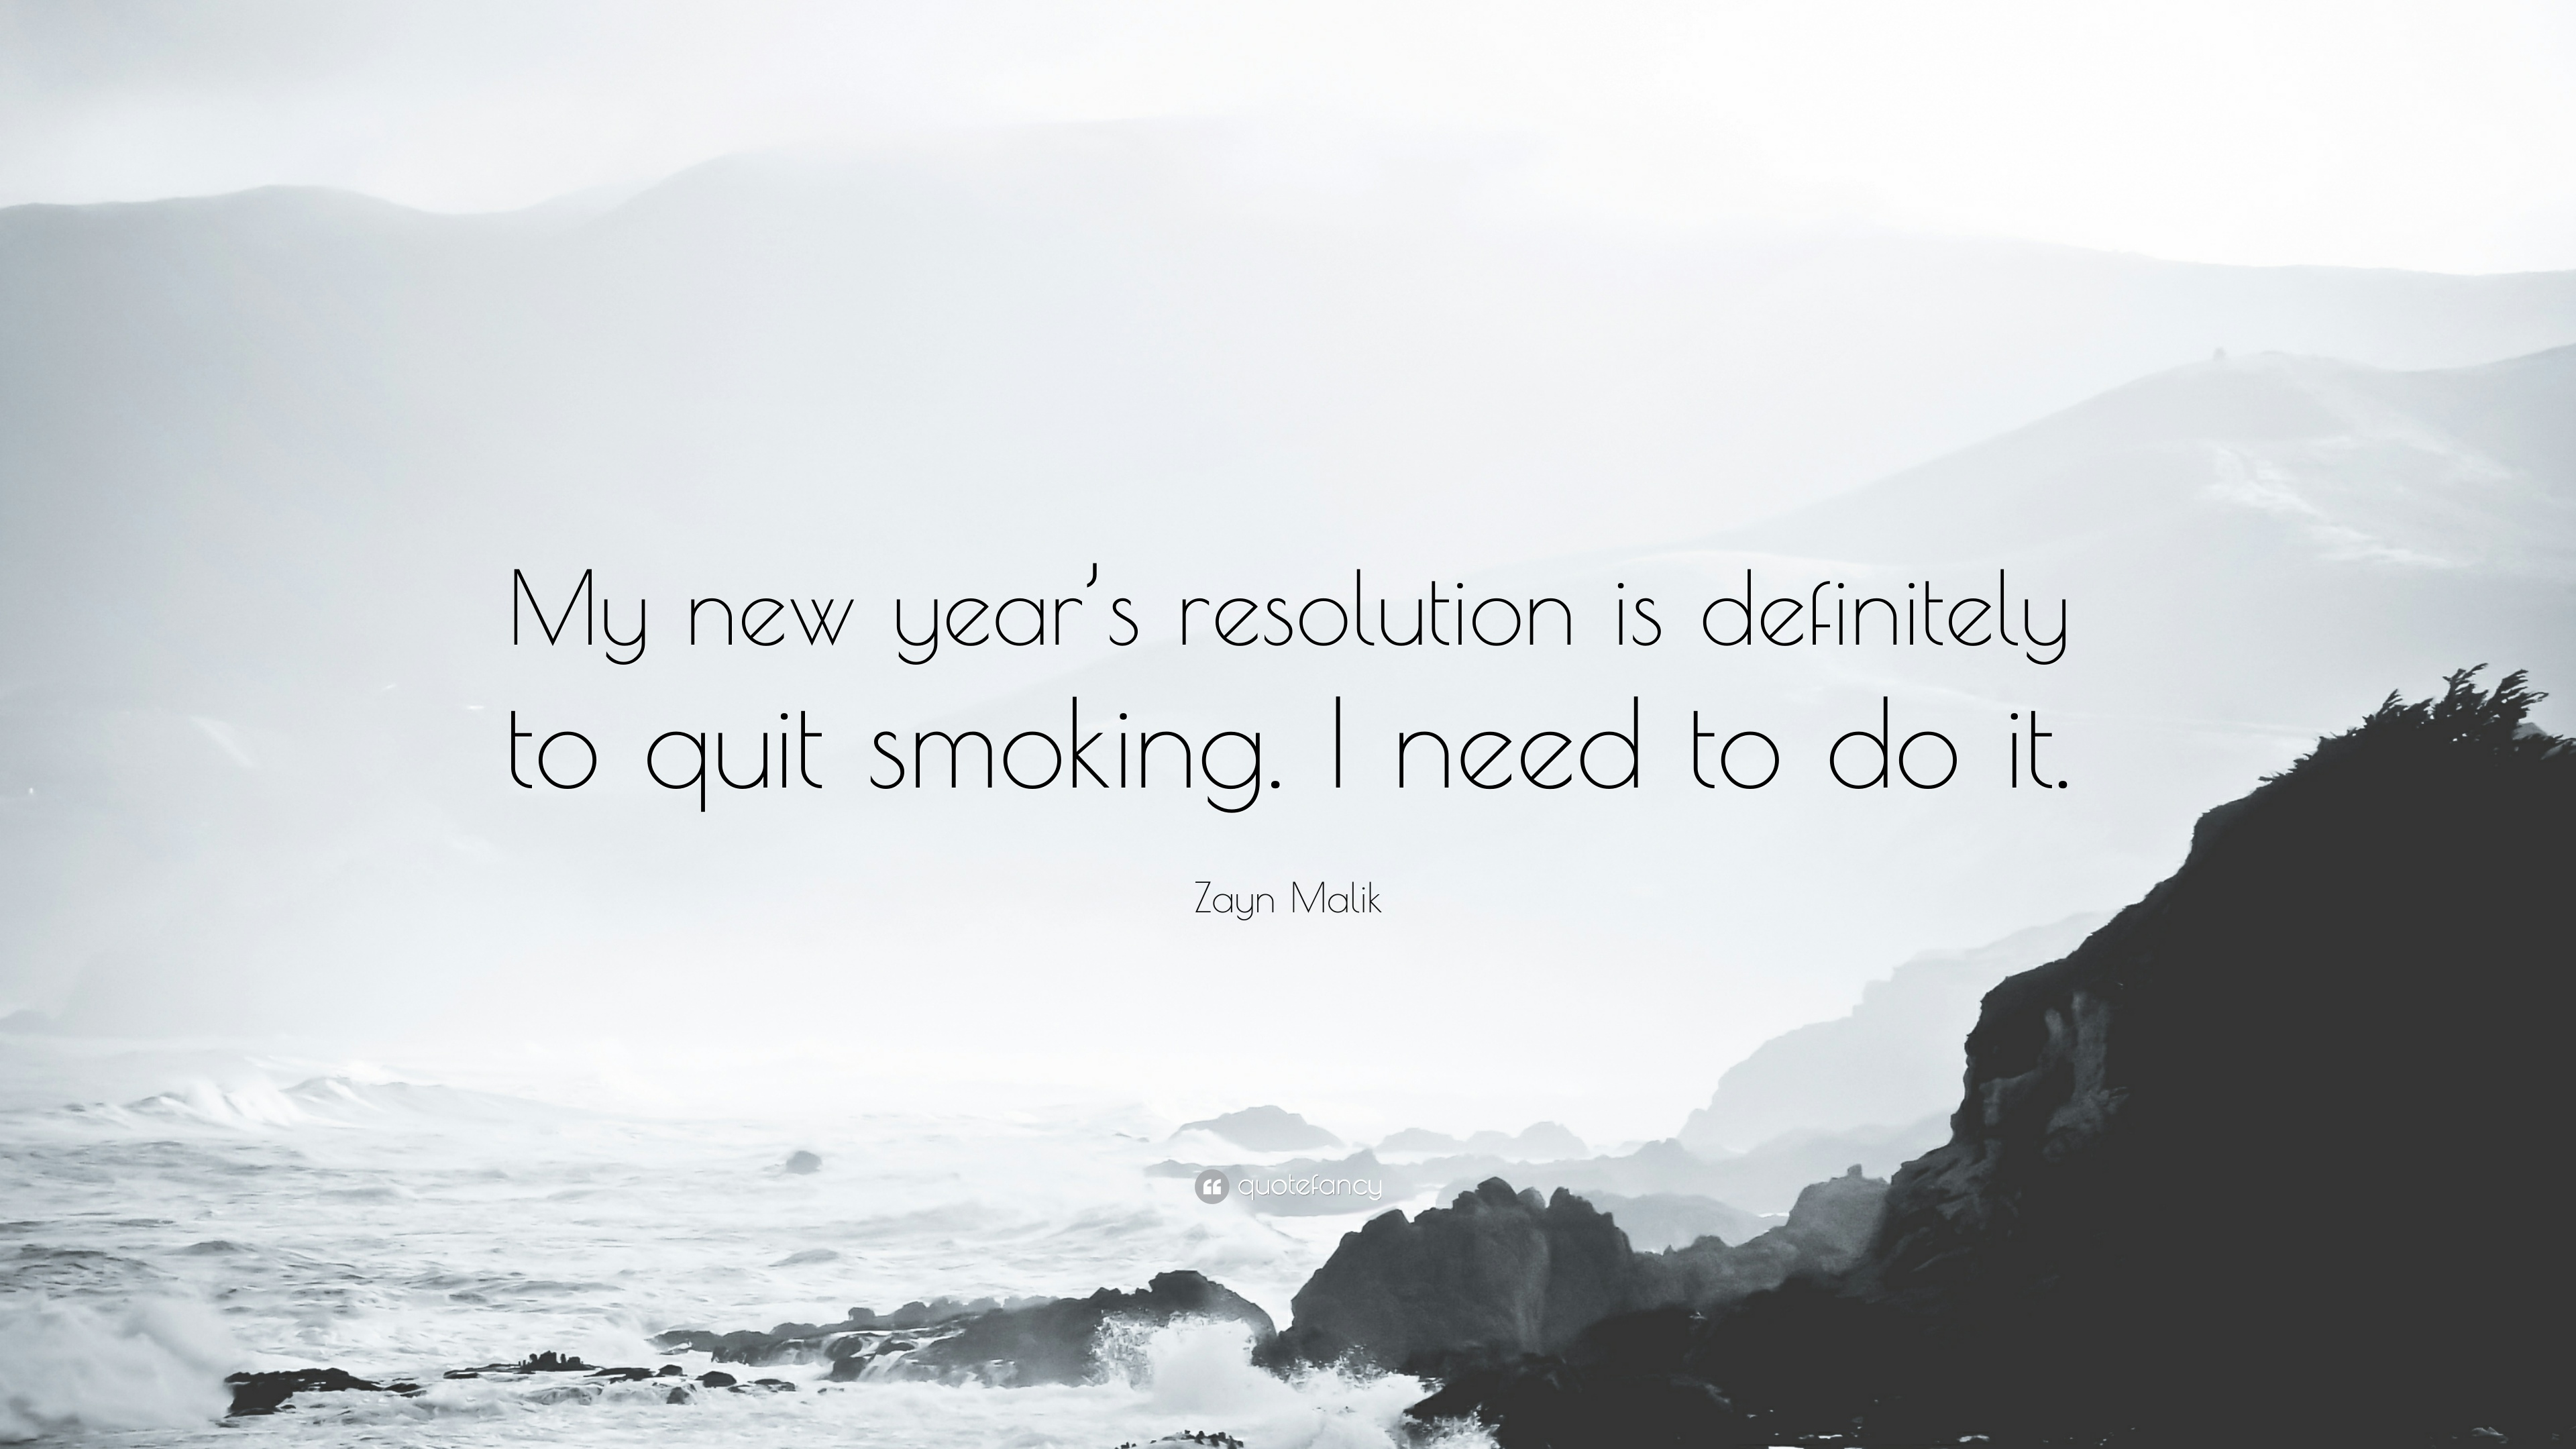 New Year Quotes (40 wallpapers) - Quotefancy